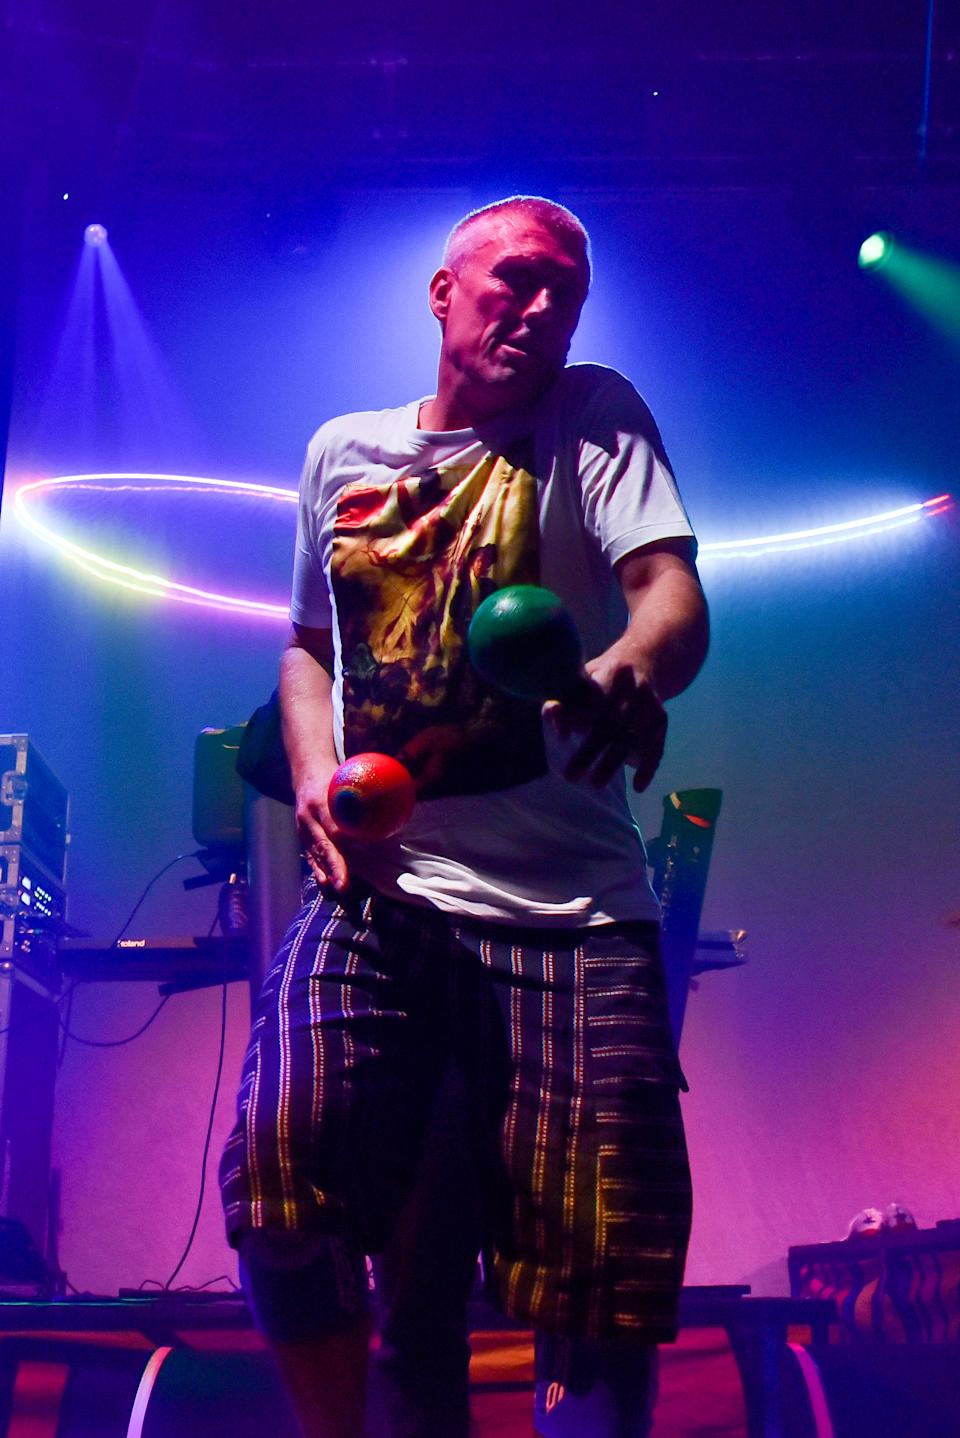 British rock band Happy Mondays perform live at Roundhouse, on October 31, 2019 in London, England.  (Photo by Alberto Pezzali/NurPhoto via Getty Images)